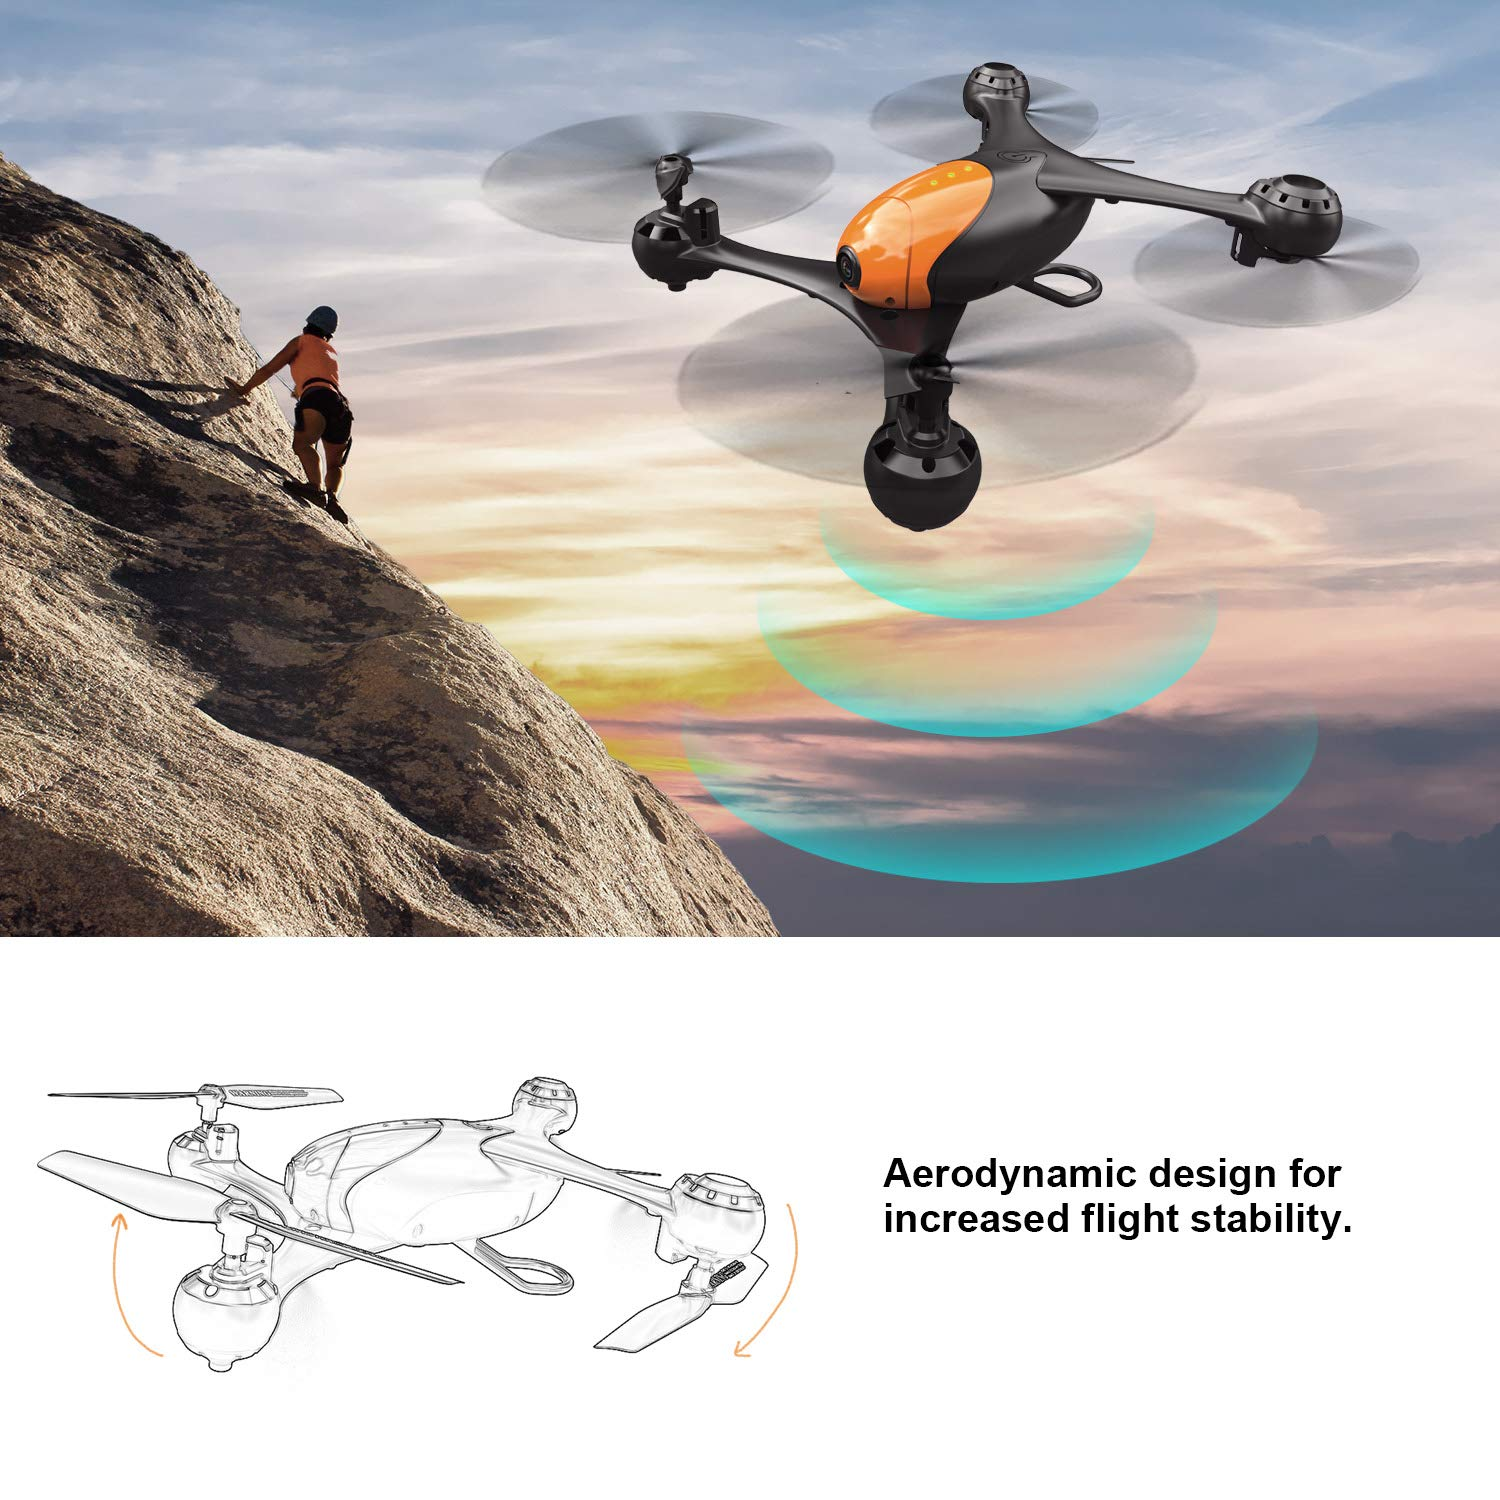 ScharkSpark Drone SS41 The Beetle Drone with 2 Cameras - 1080P FPV HD Camera/Video and 720P Optical Flow Positioning Camera, RC Toy Quadcopter Equipped with Lost-Control Protection Technology by ScharkSpark (Image #6)